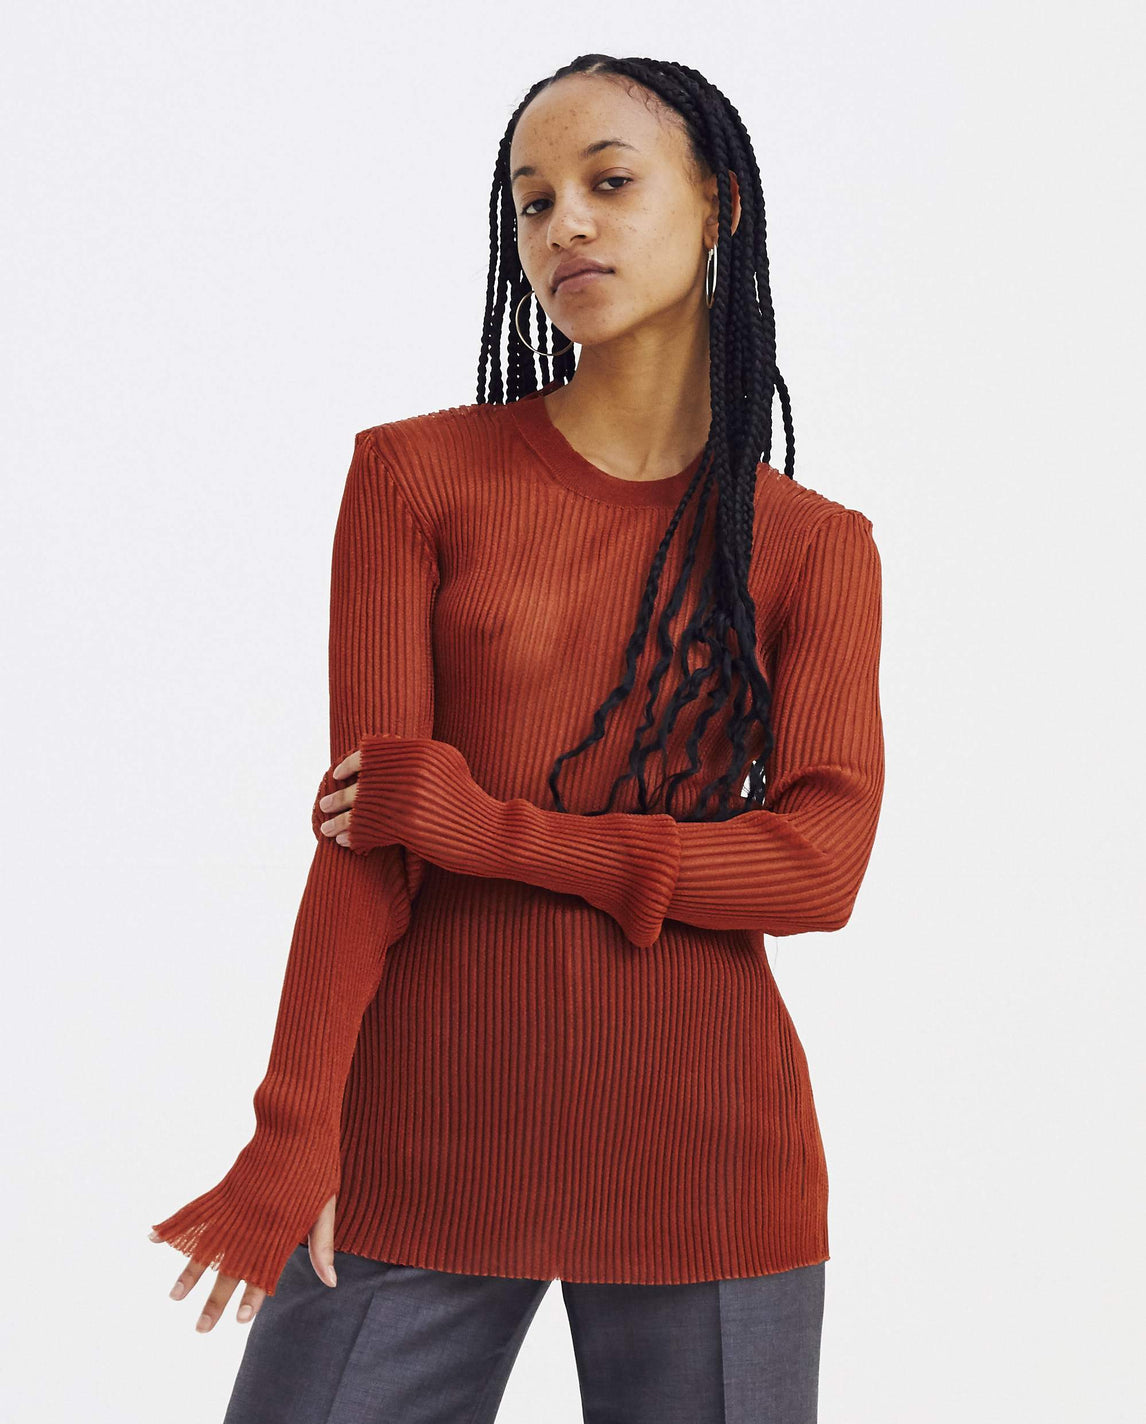 Sheer Pullover - Red WOMENS MAISON MARGIELA